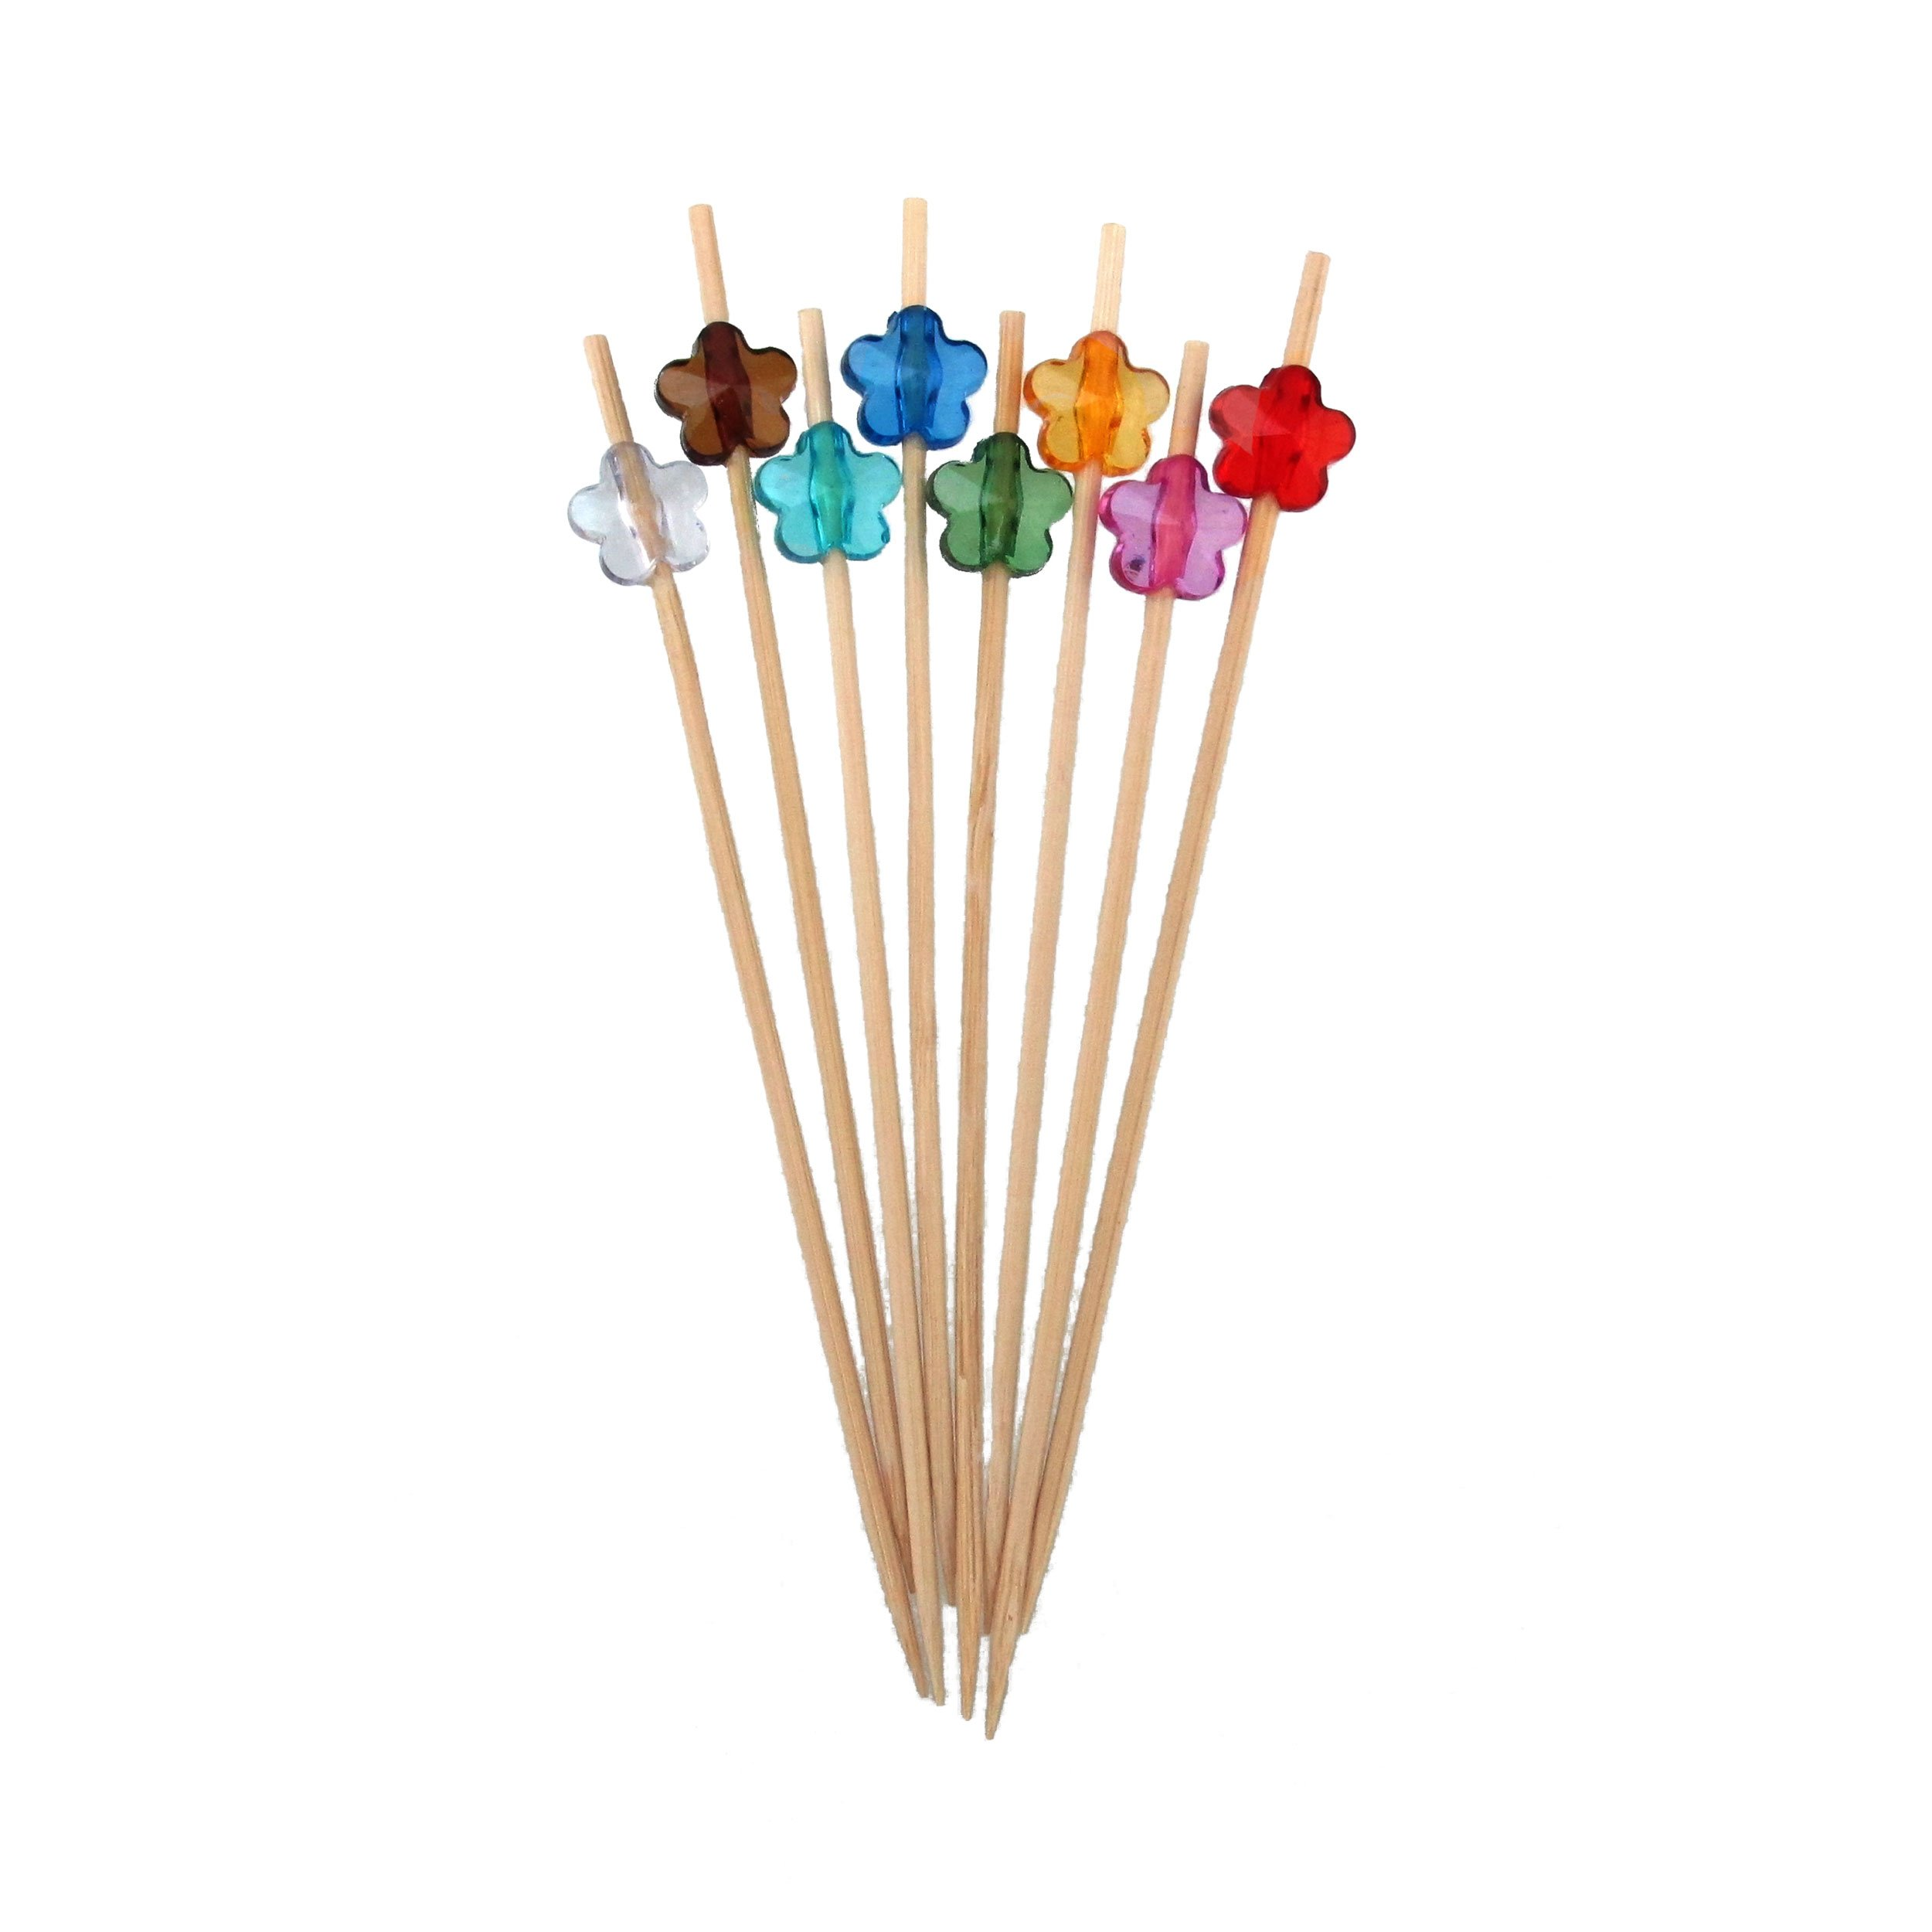 BambooMN 4.7'' Decorative Bamboo Arcylic Flower Cocktails Hors D'oeuvres Fruit Sandwich Skewers Picks for Catered Events, Holiday's, Restaurants or Buffet Party Supplies, 200 Pieces